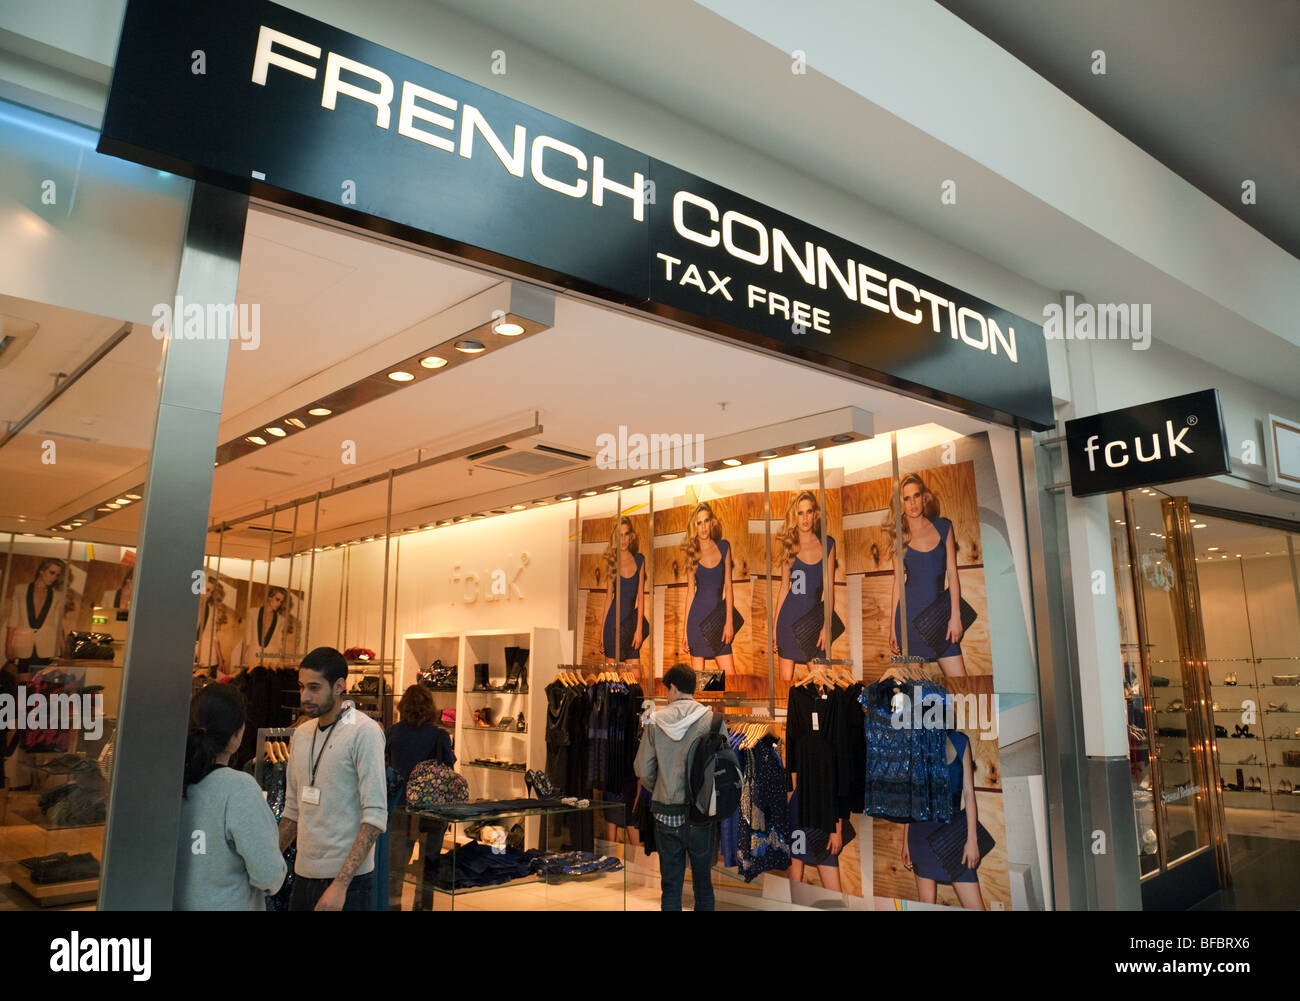 7a461d6b02b French Connection UK store, fcuk, Terminal one, Heathrow airport, London UK